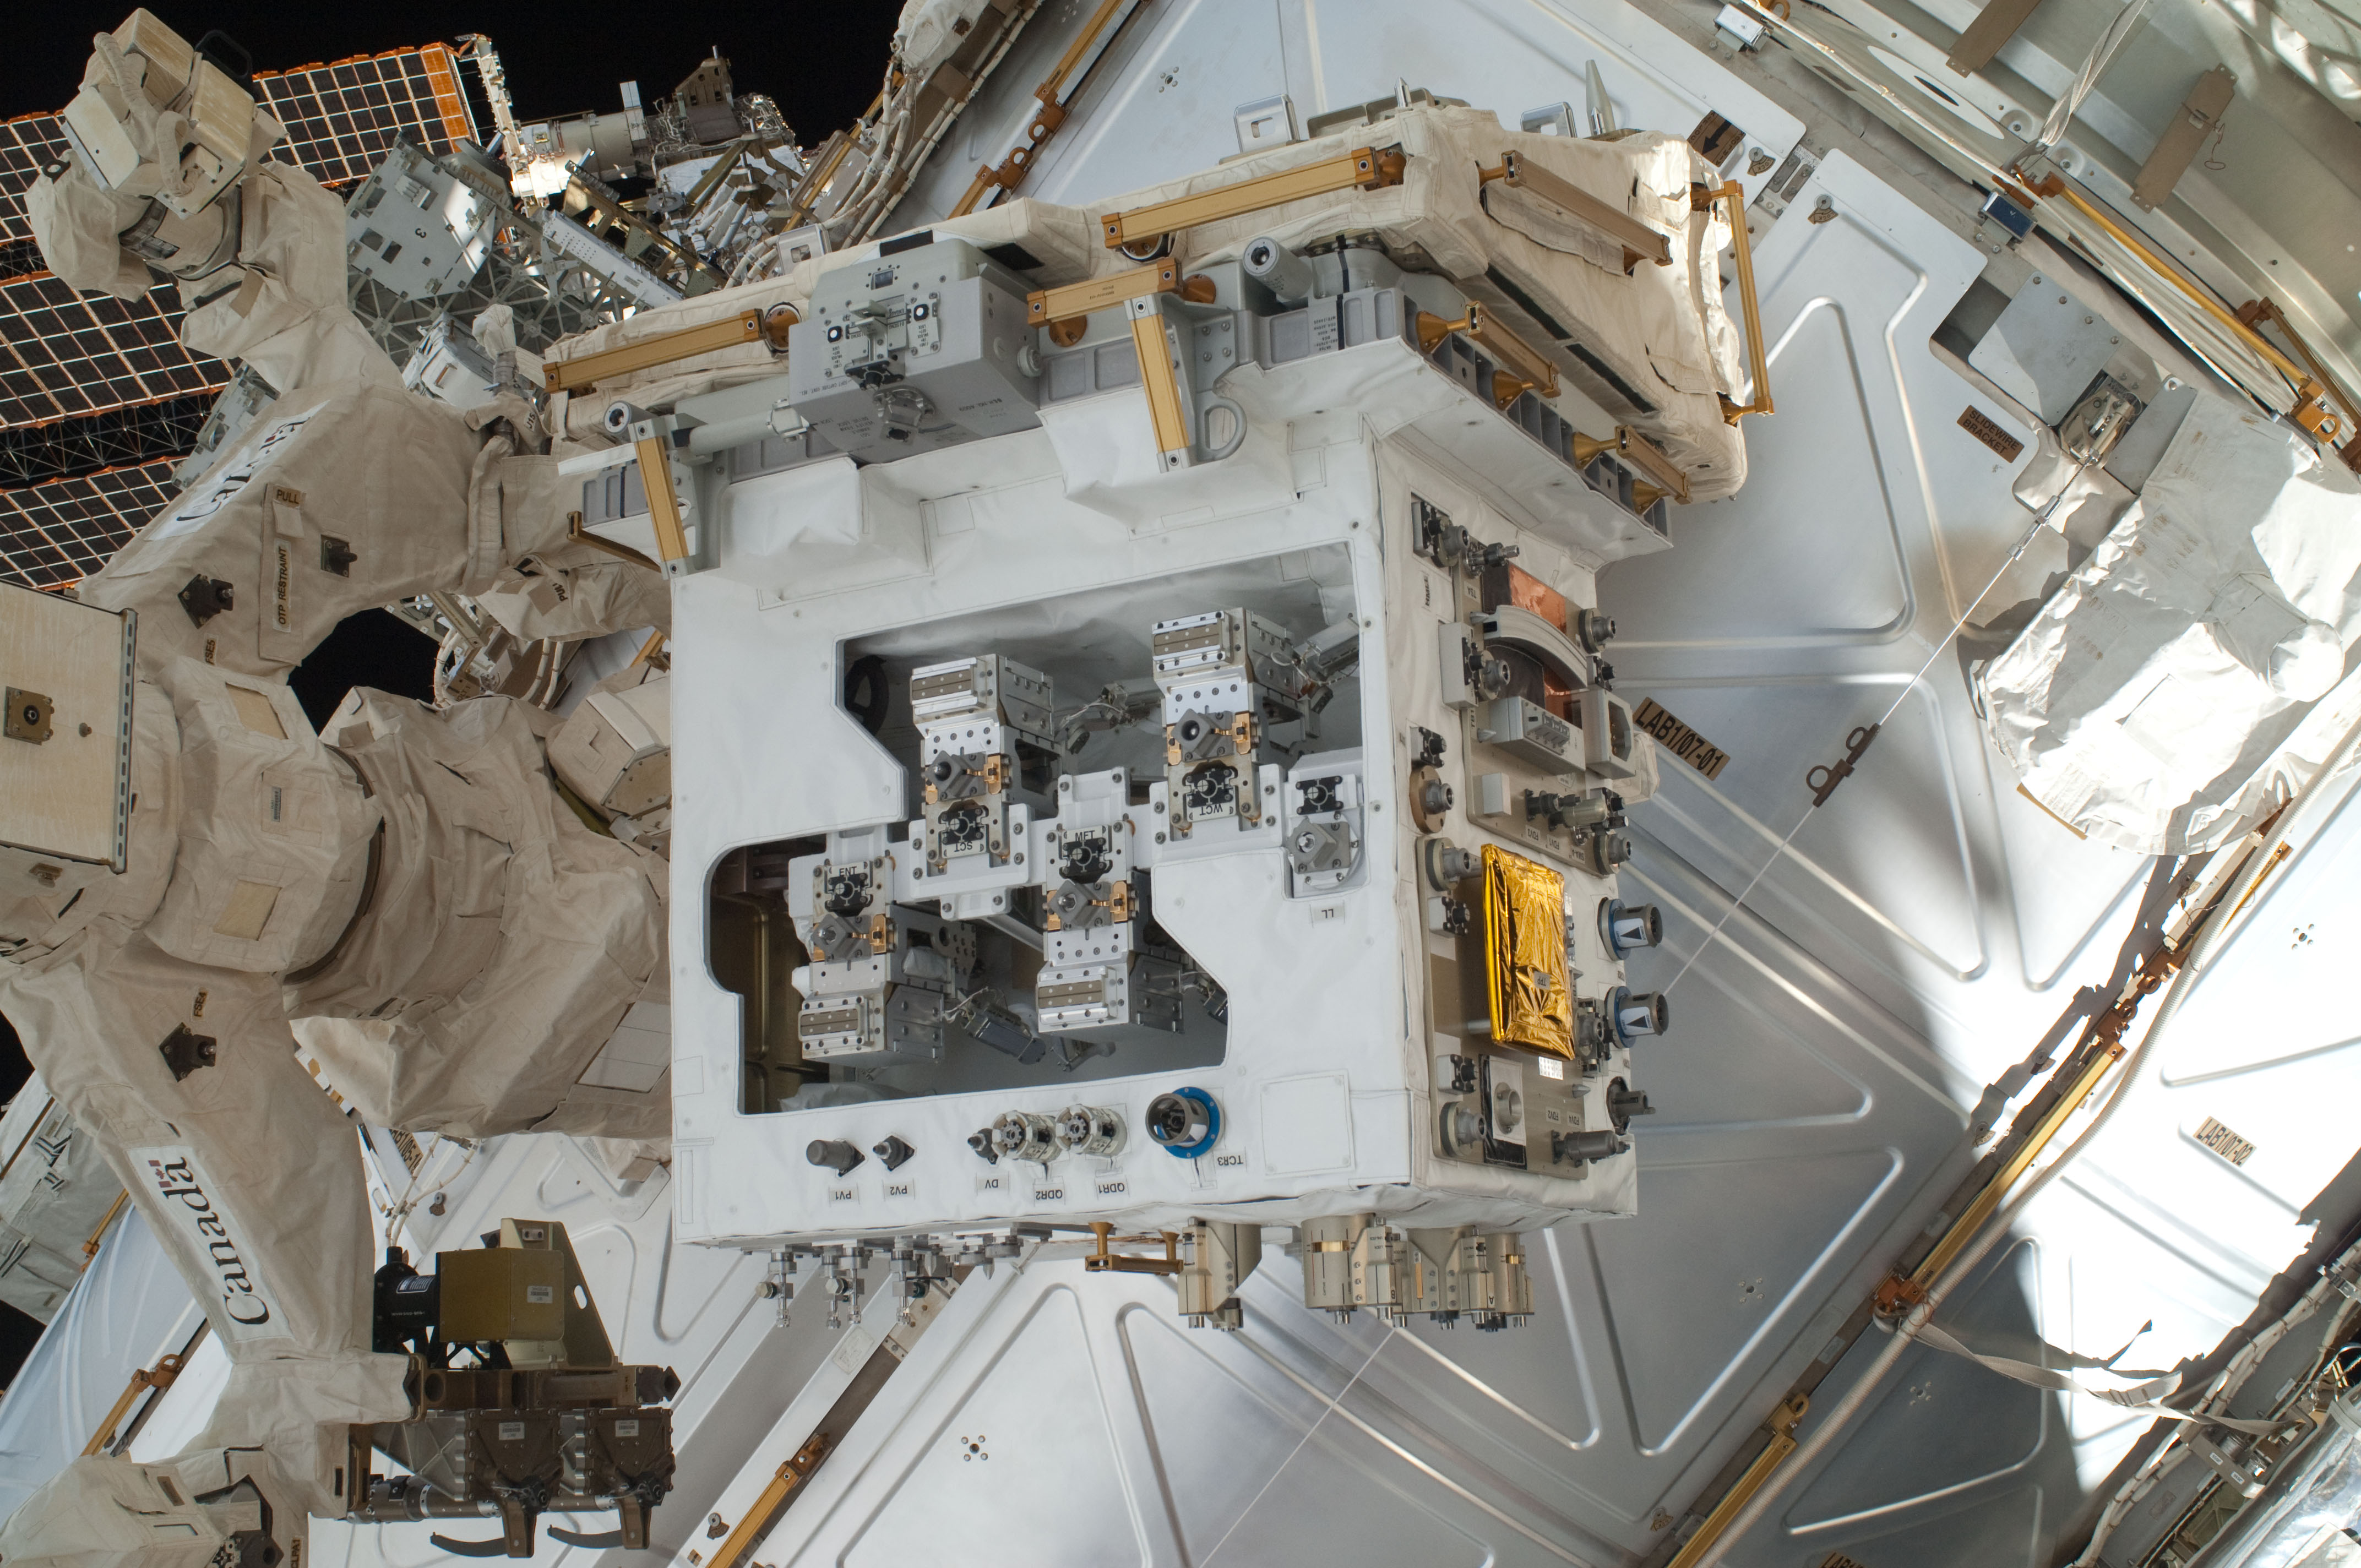 nasa robotic refueling module soon to be relocated to permanent the robotic refueling mission module installed on its temporary platform on the international space station s